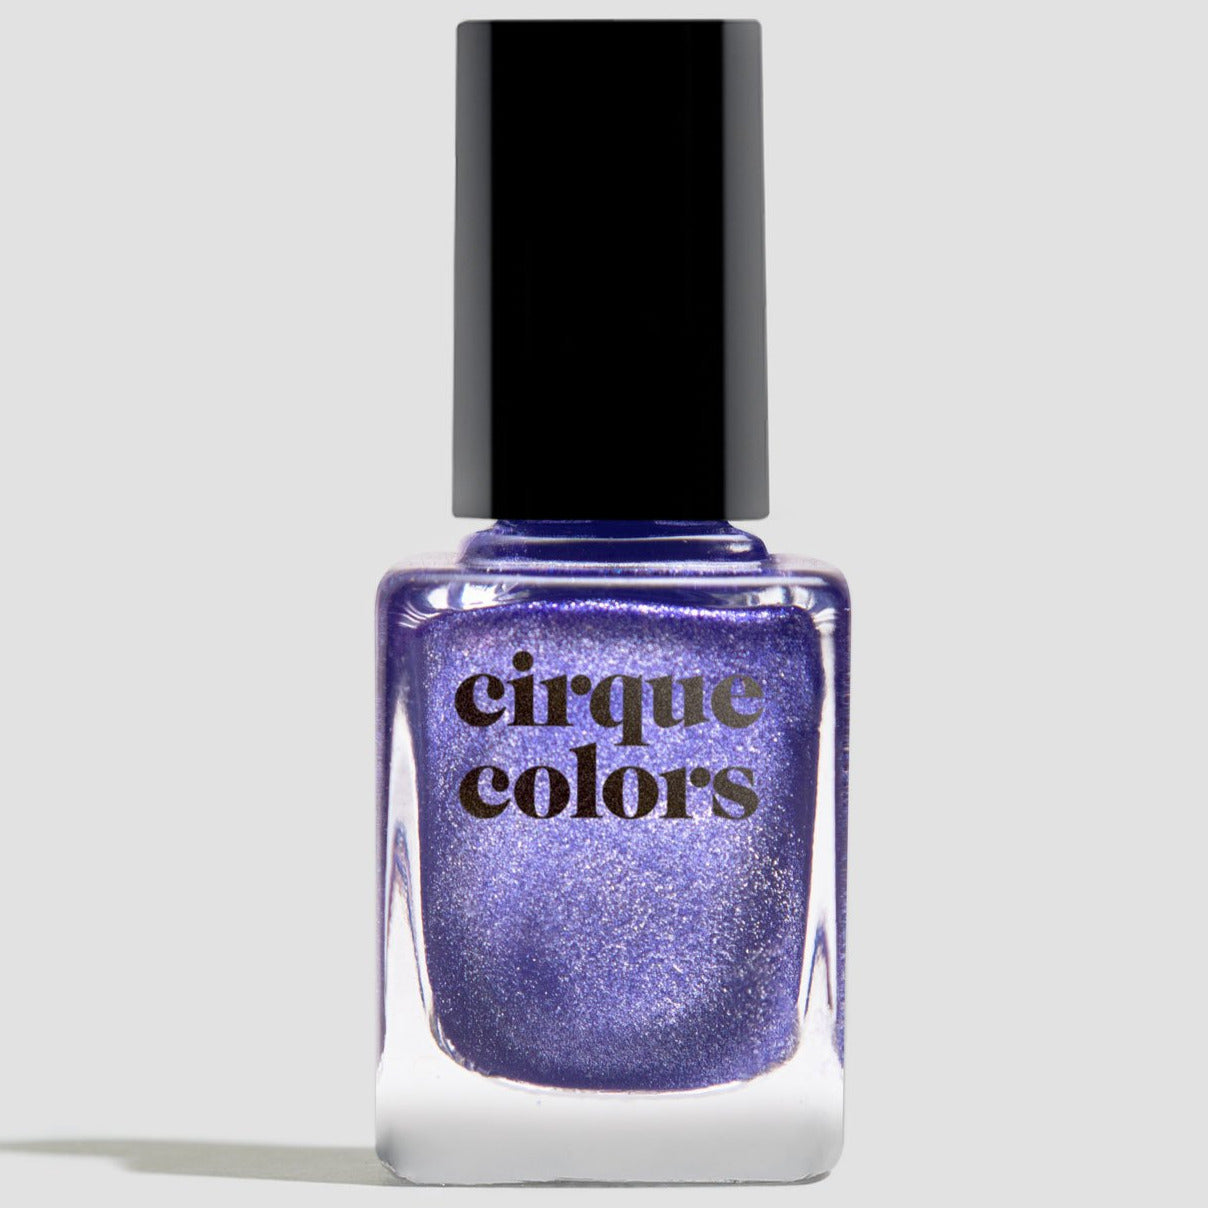 *PRE-SALE* Cirque Colors - Oracle (Magnetic)